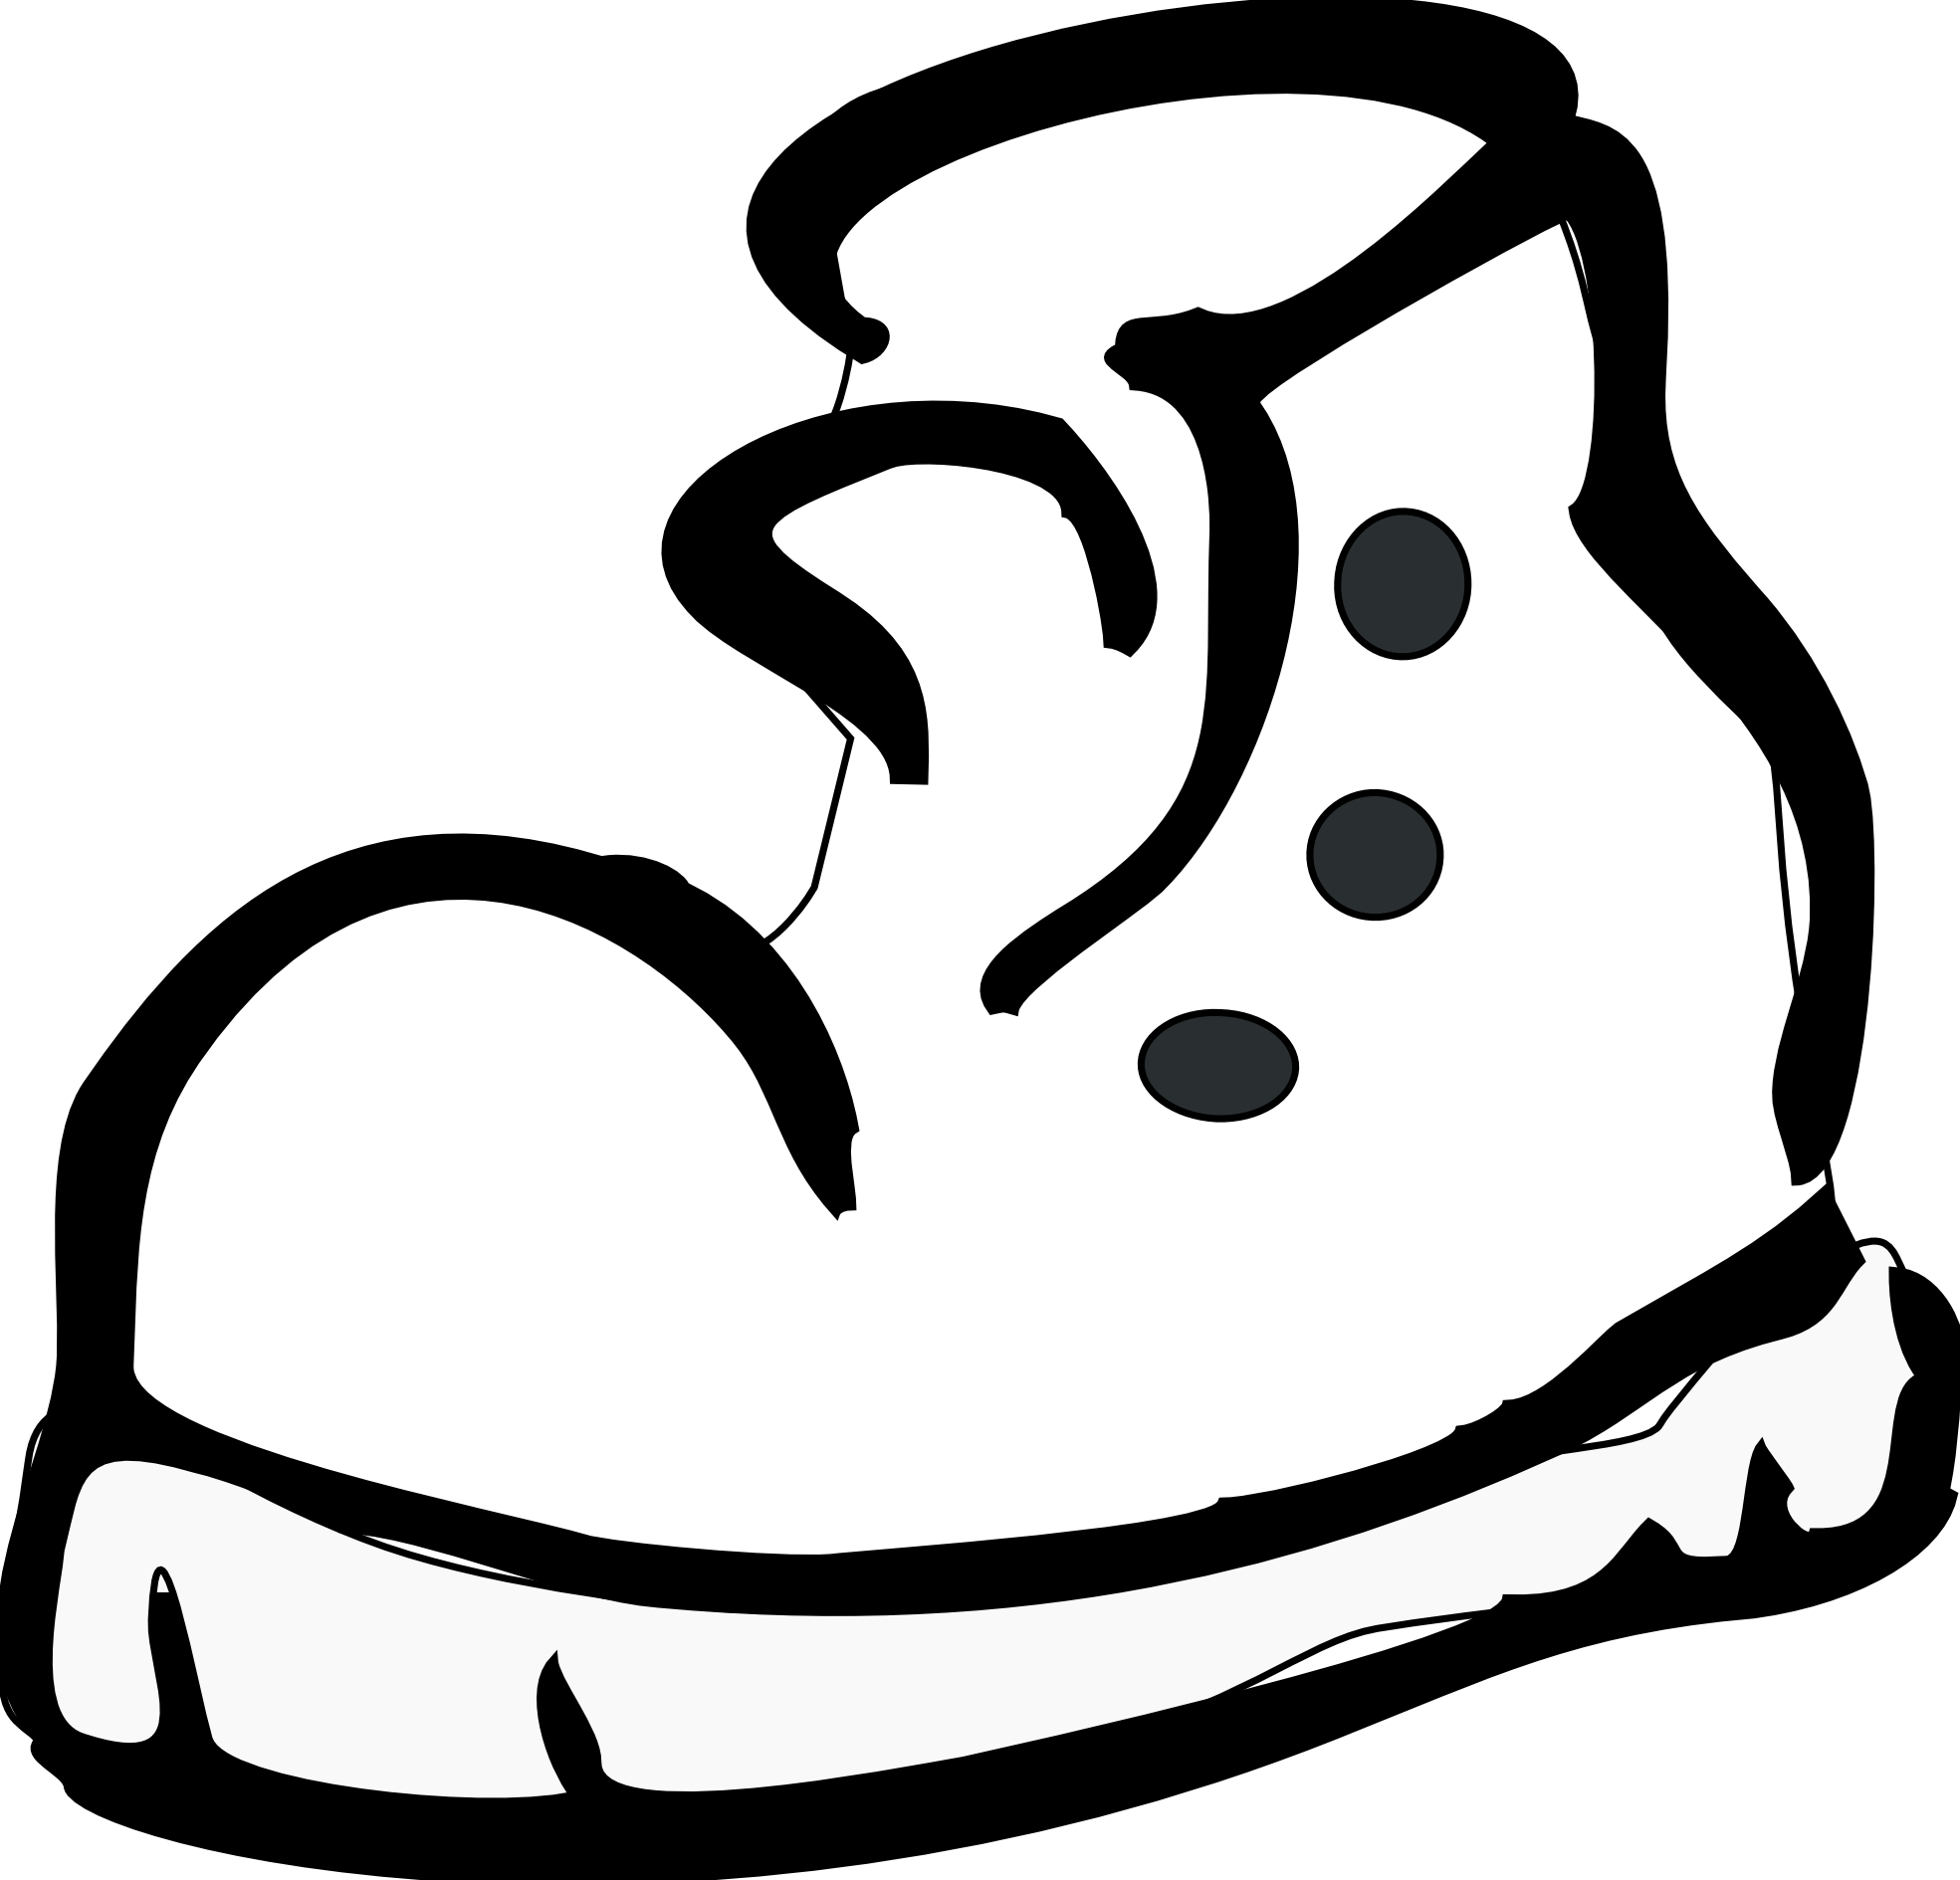 Basketball shoes from above clipart black and white svg Nike Running Shoes Clipart | Clipart Panda - Free Clipart Images svg